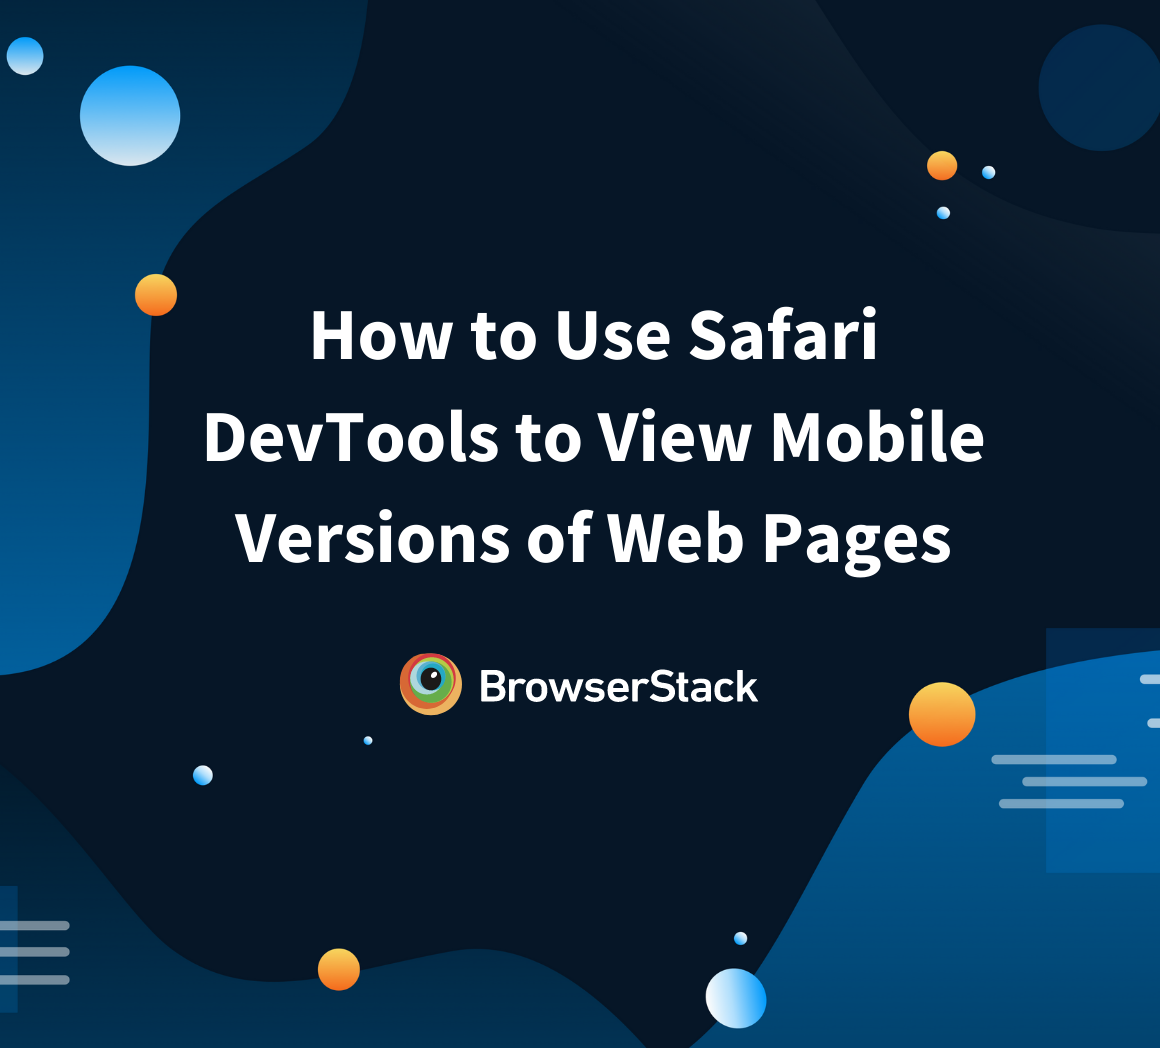 Safari DevTools to View Mobile Versions of Web Pages